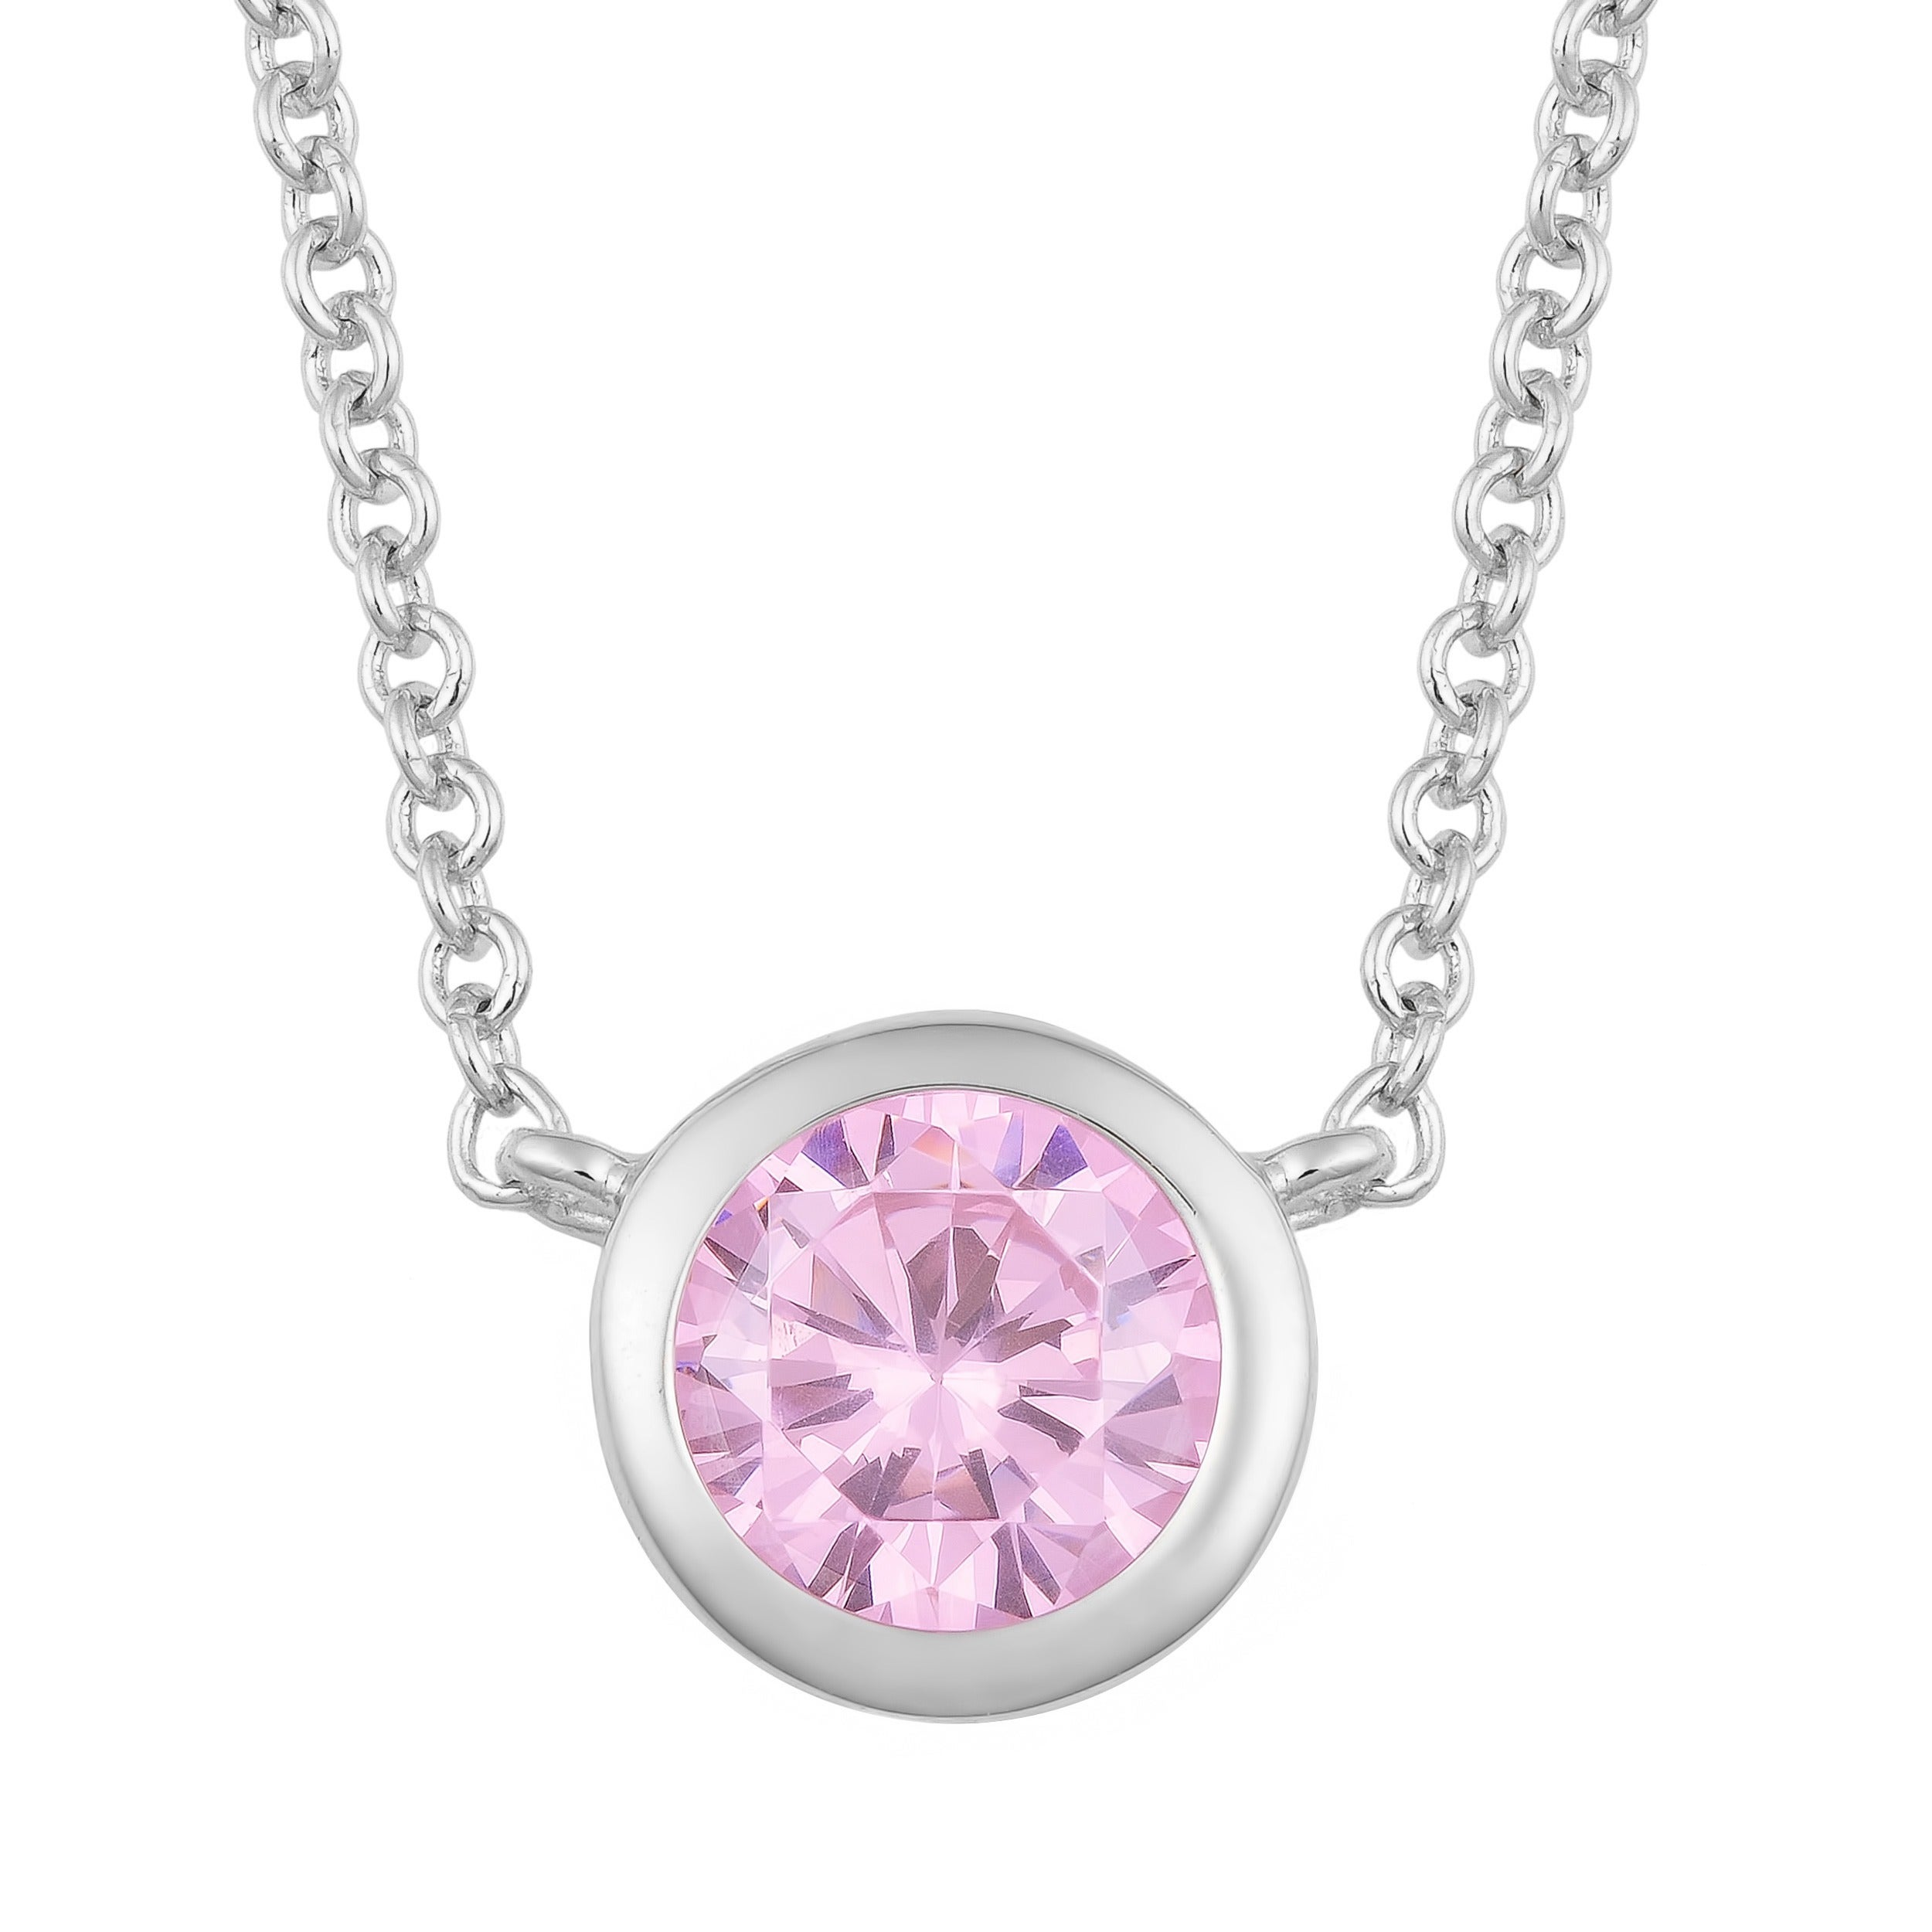 birthstone collections il necklace women s charm jewelry fullxfull june birthdays bracelet products